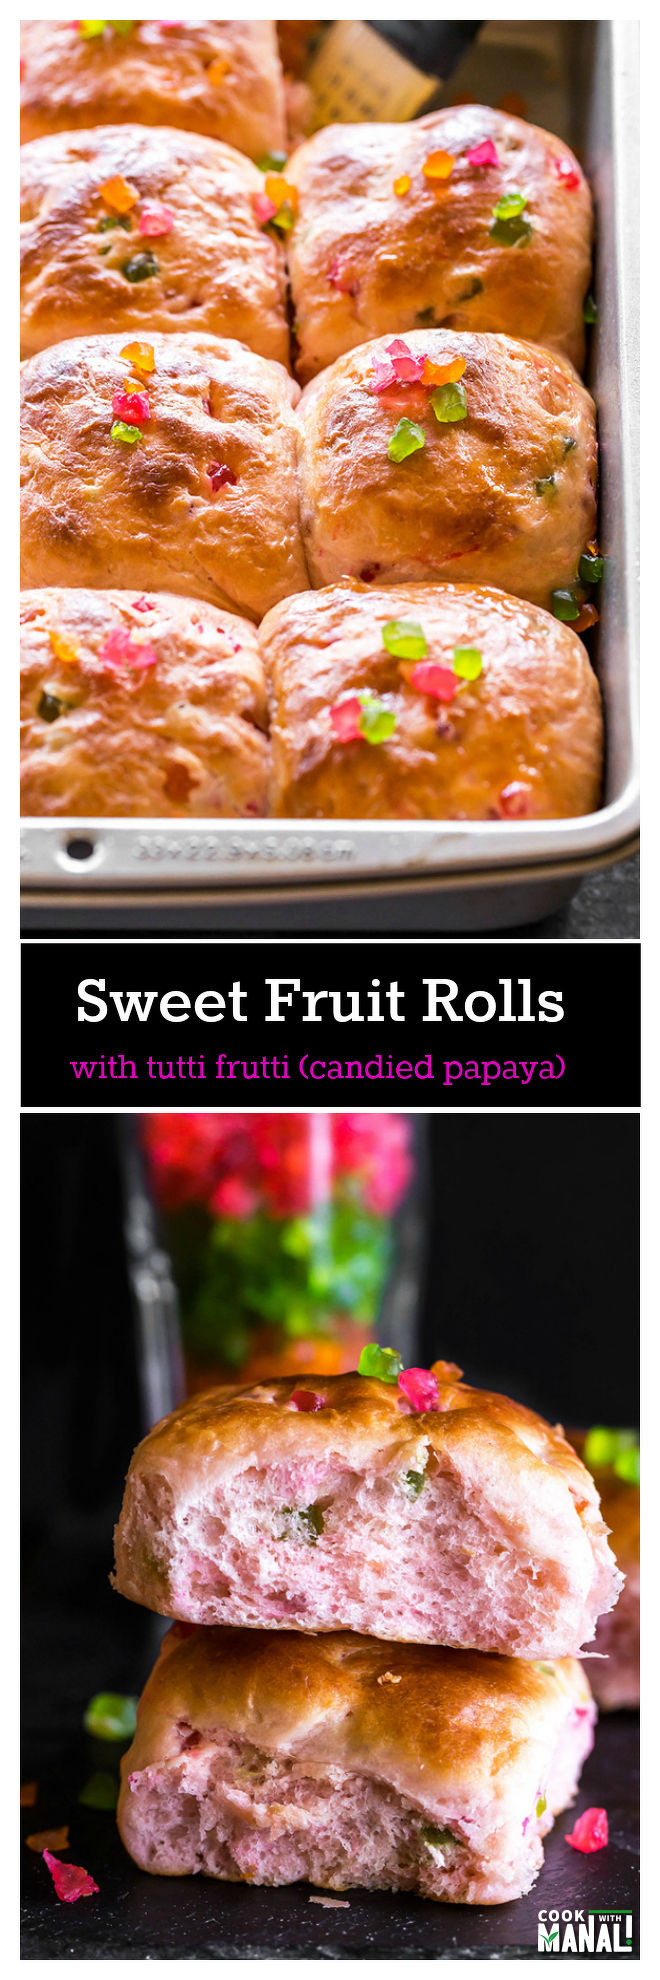 sweet-fruit-rolls-collage